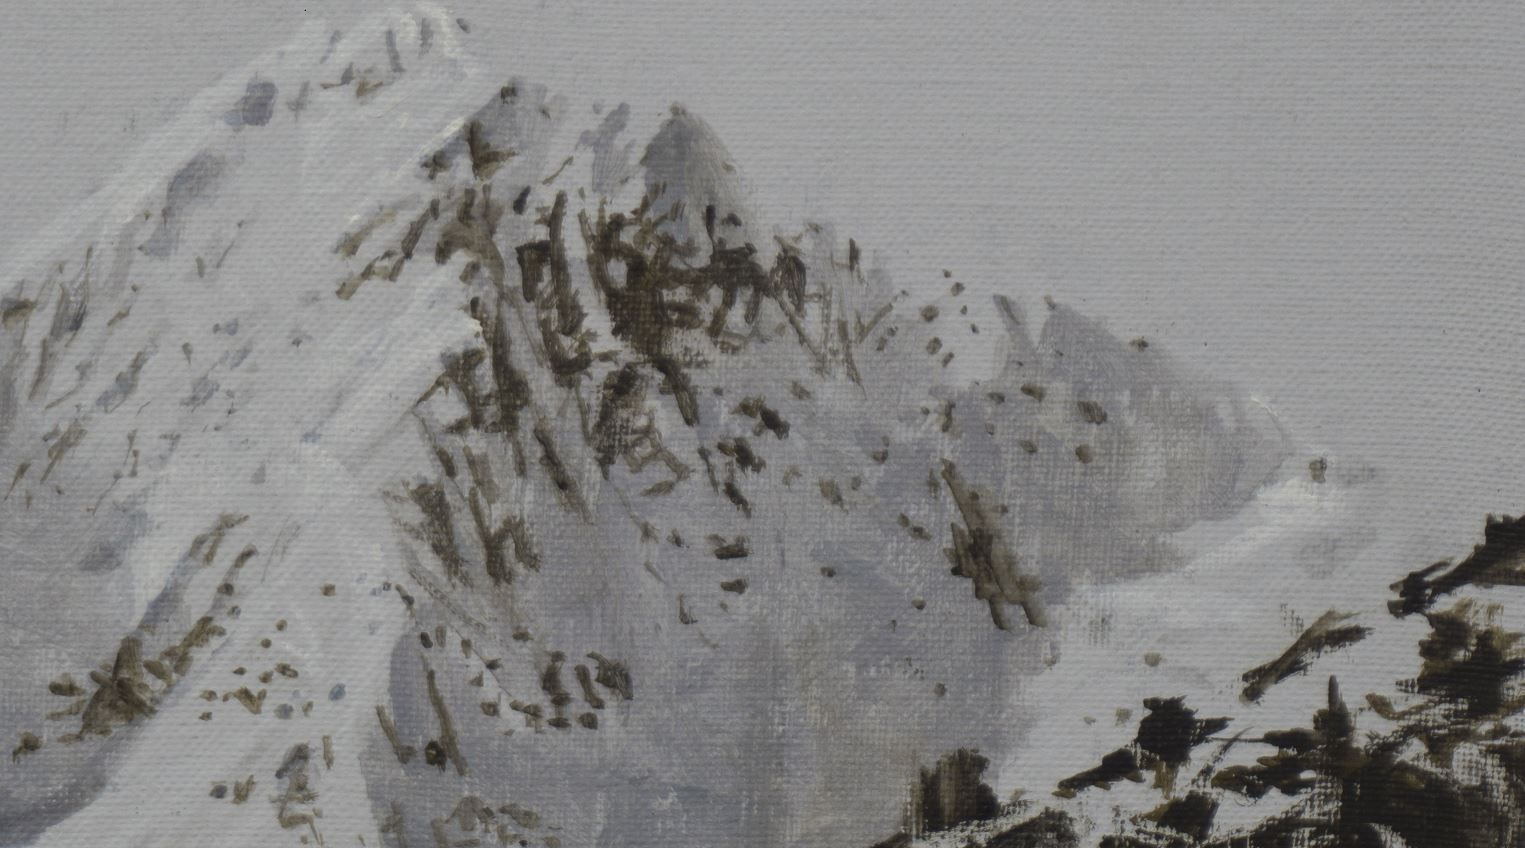 Benasque Study 1, Snow collection,Calo  Carratalá,Contemporary painting, detail 2